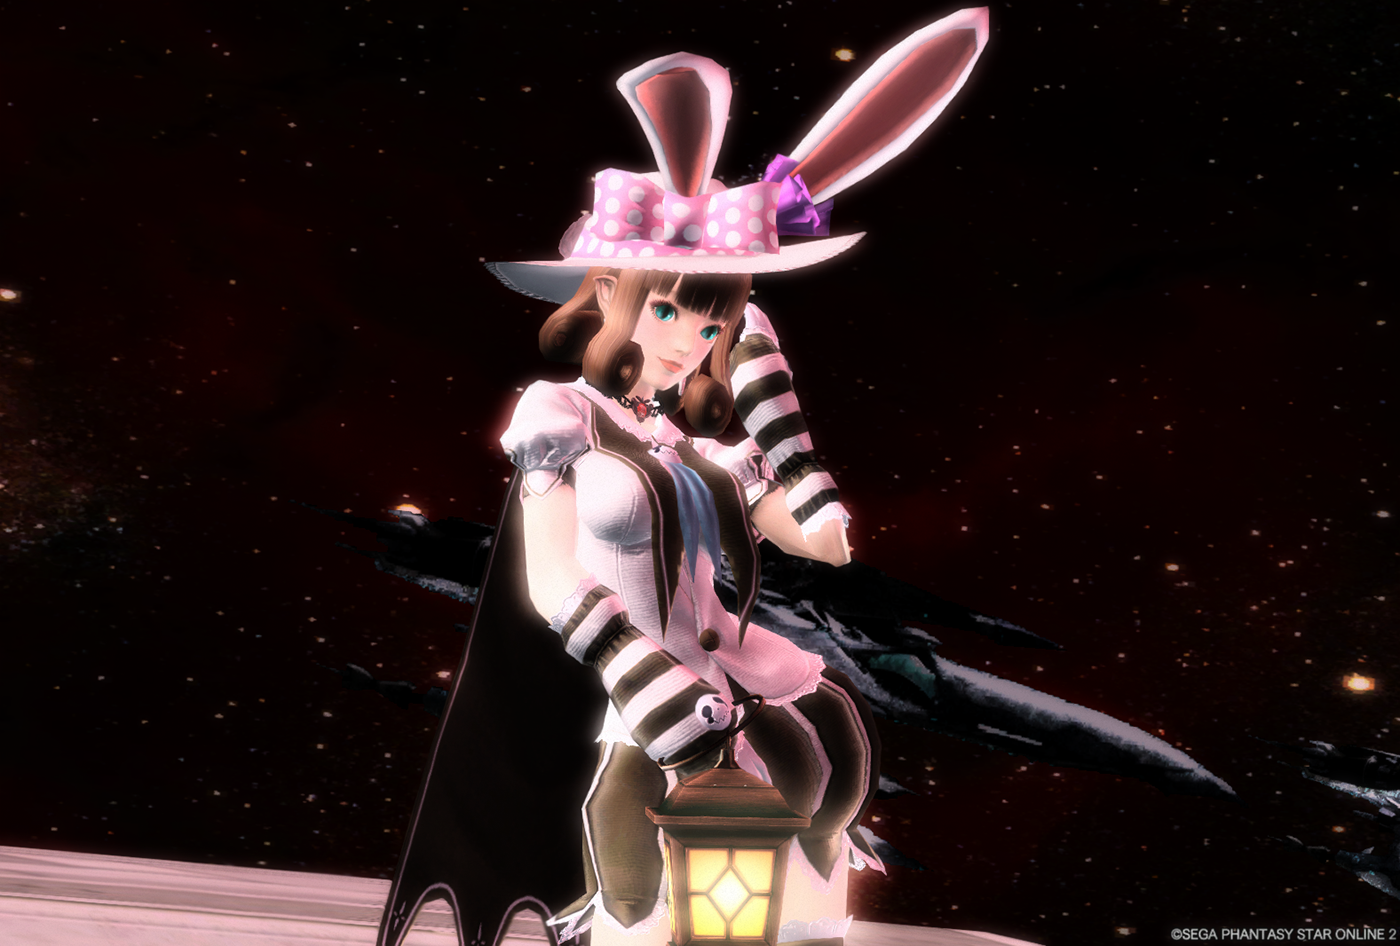 pso20150507_202901_068.png